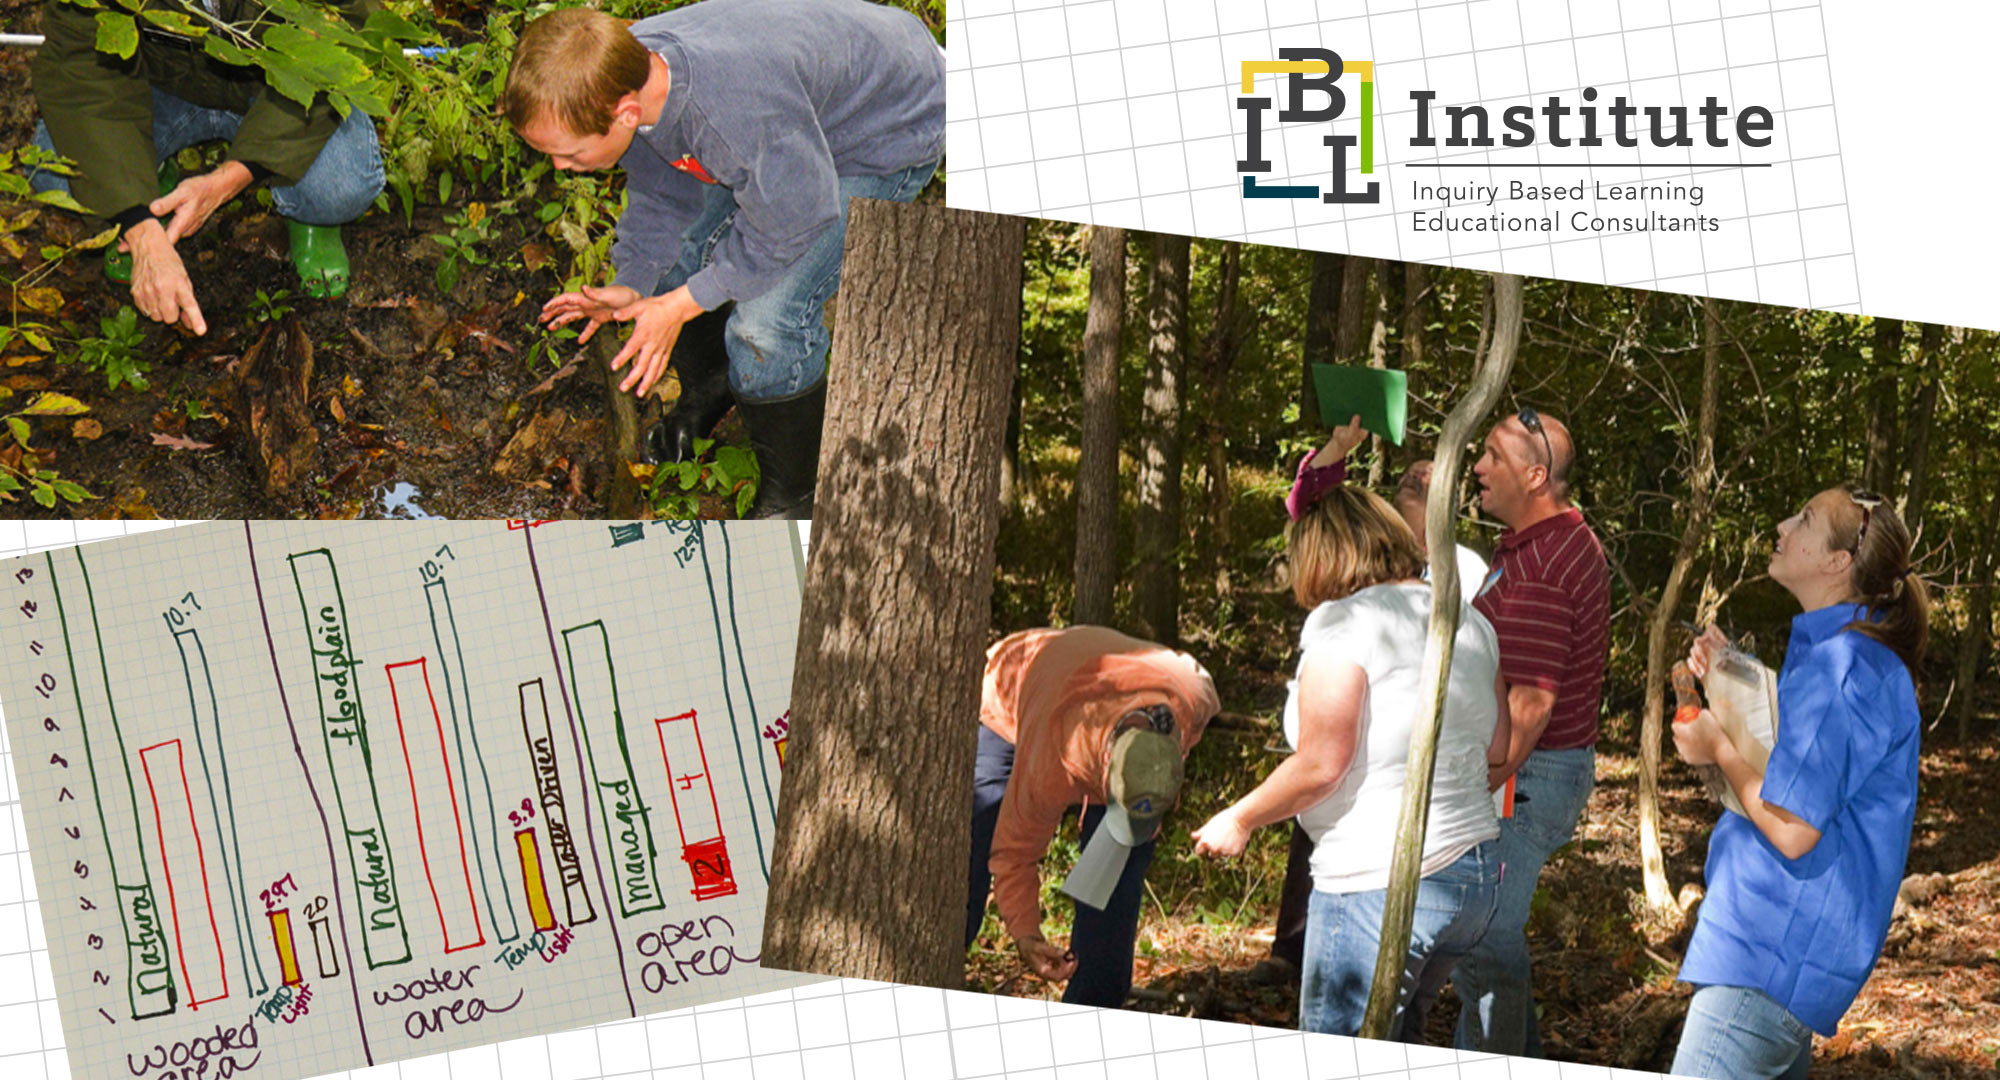 Inquiry based learning workshops